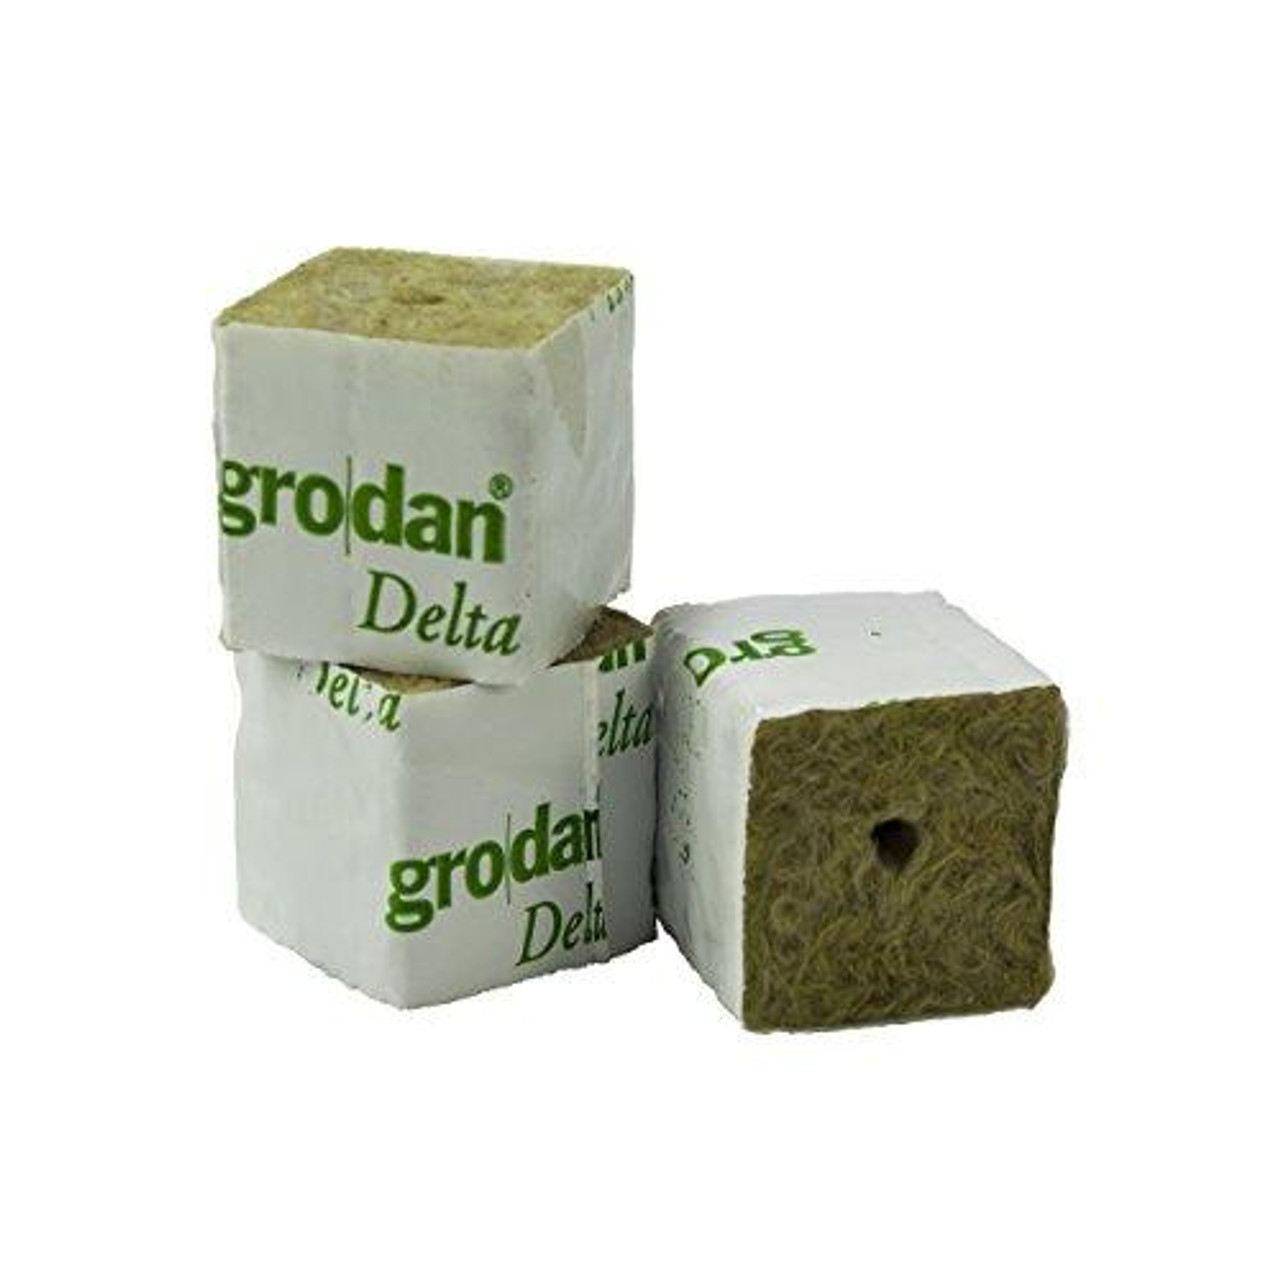 GRODAN 75MM X 75MM WRAPPED CUBE NO HOLE